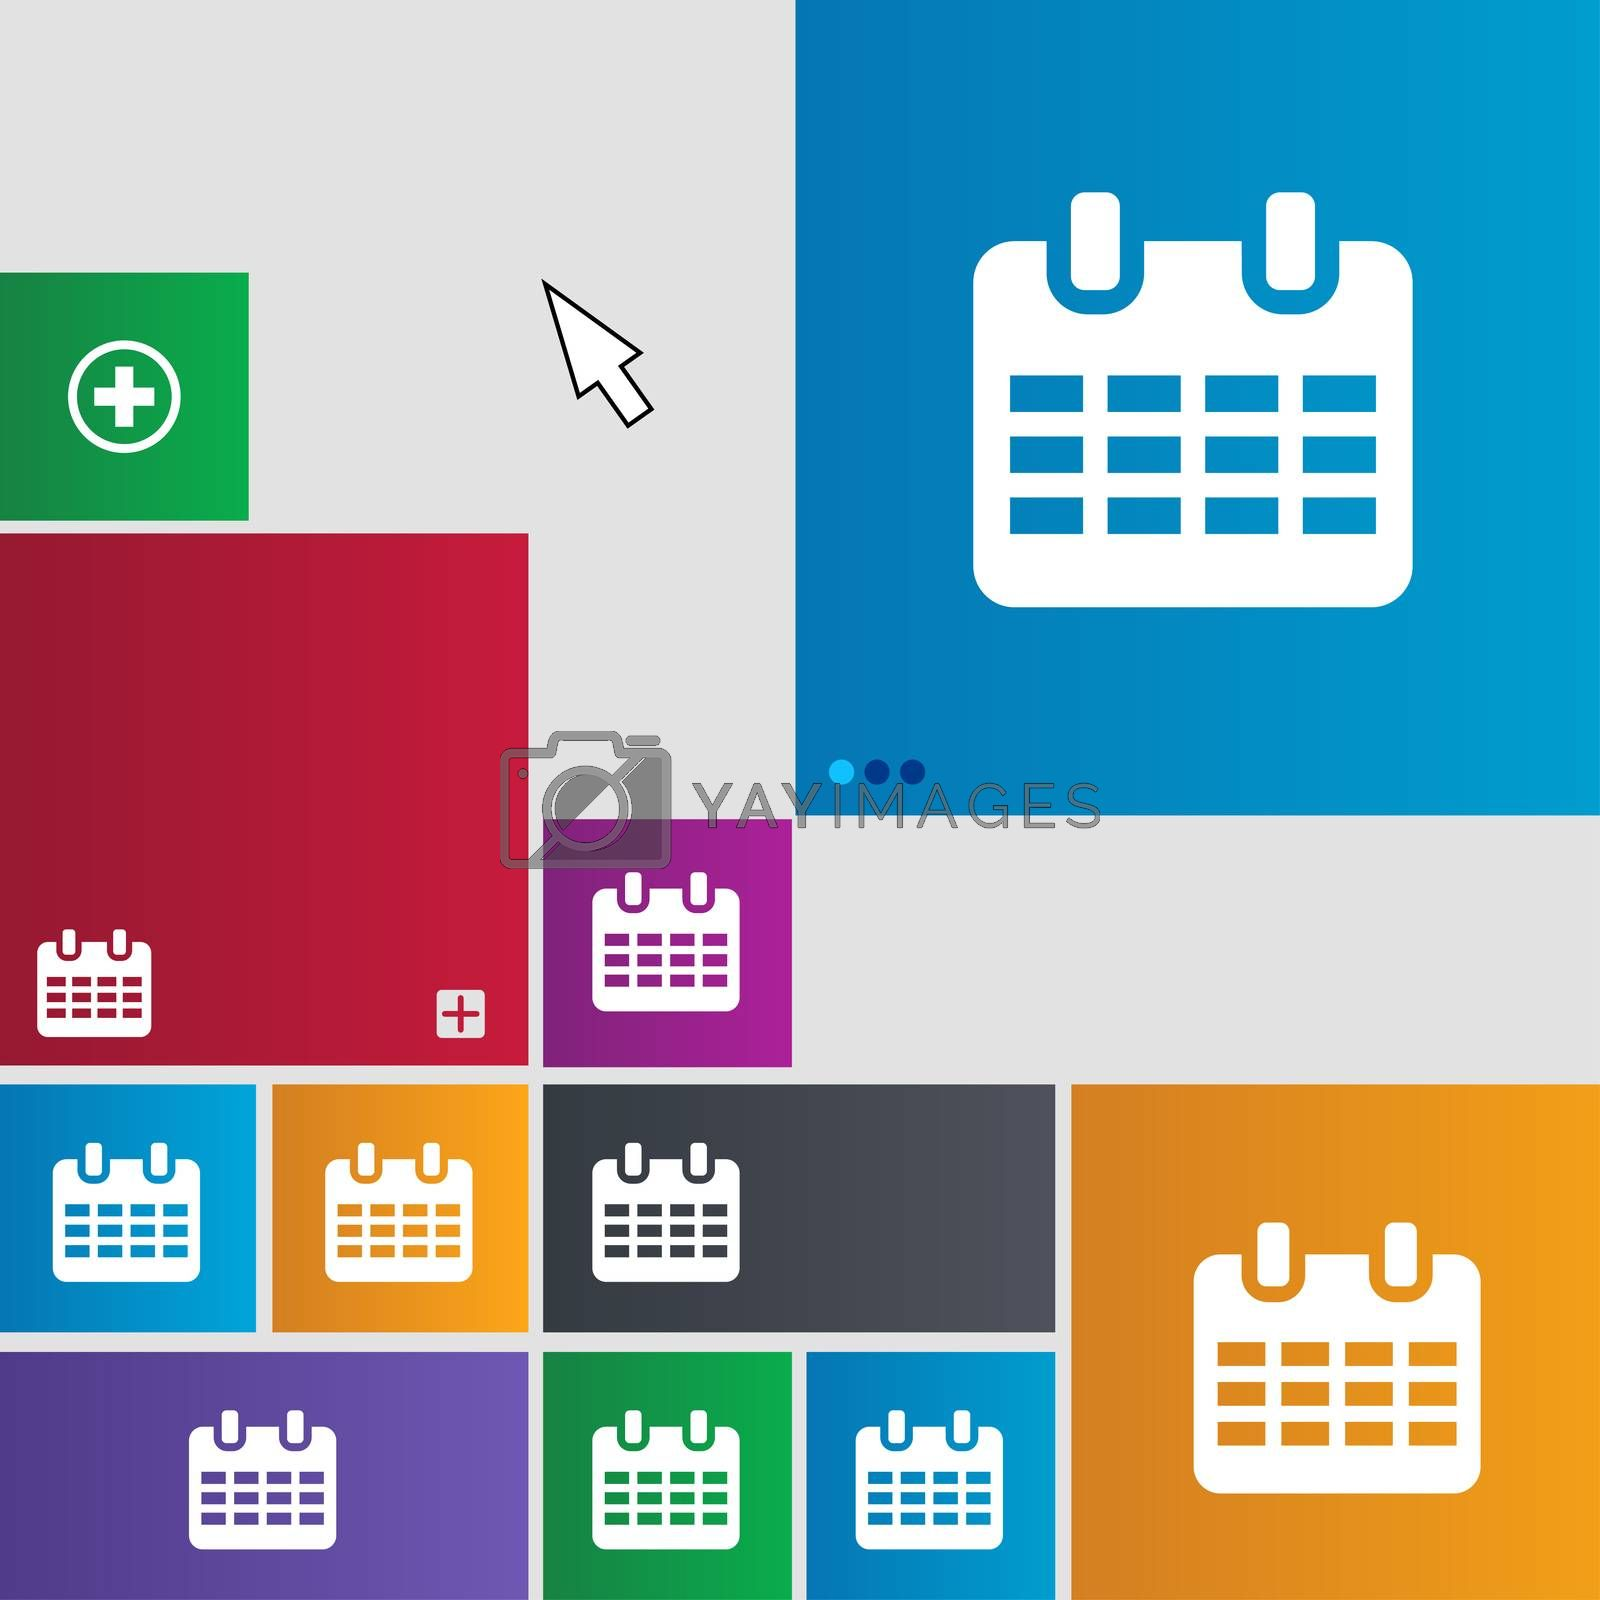 Calendar, Date or event reminder icon sign. Metro style buttons. Modern interface website buttons with cursor pointer.  by Serhii Lohvyniuk